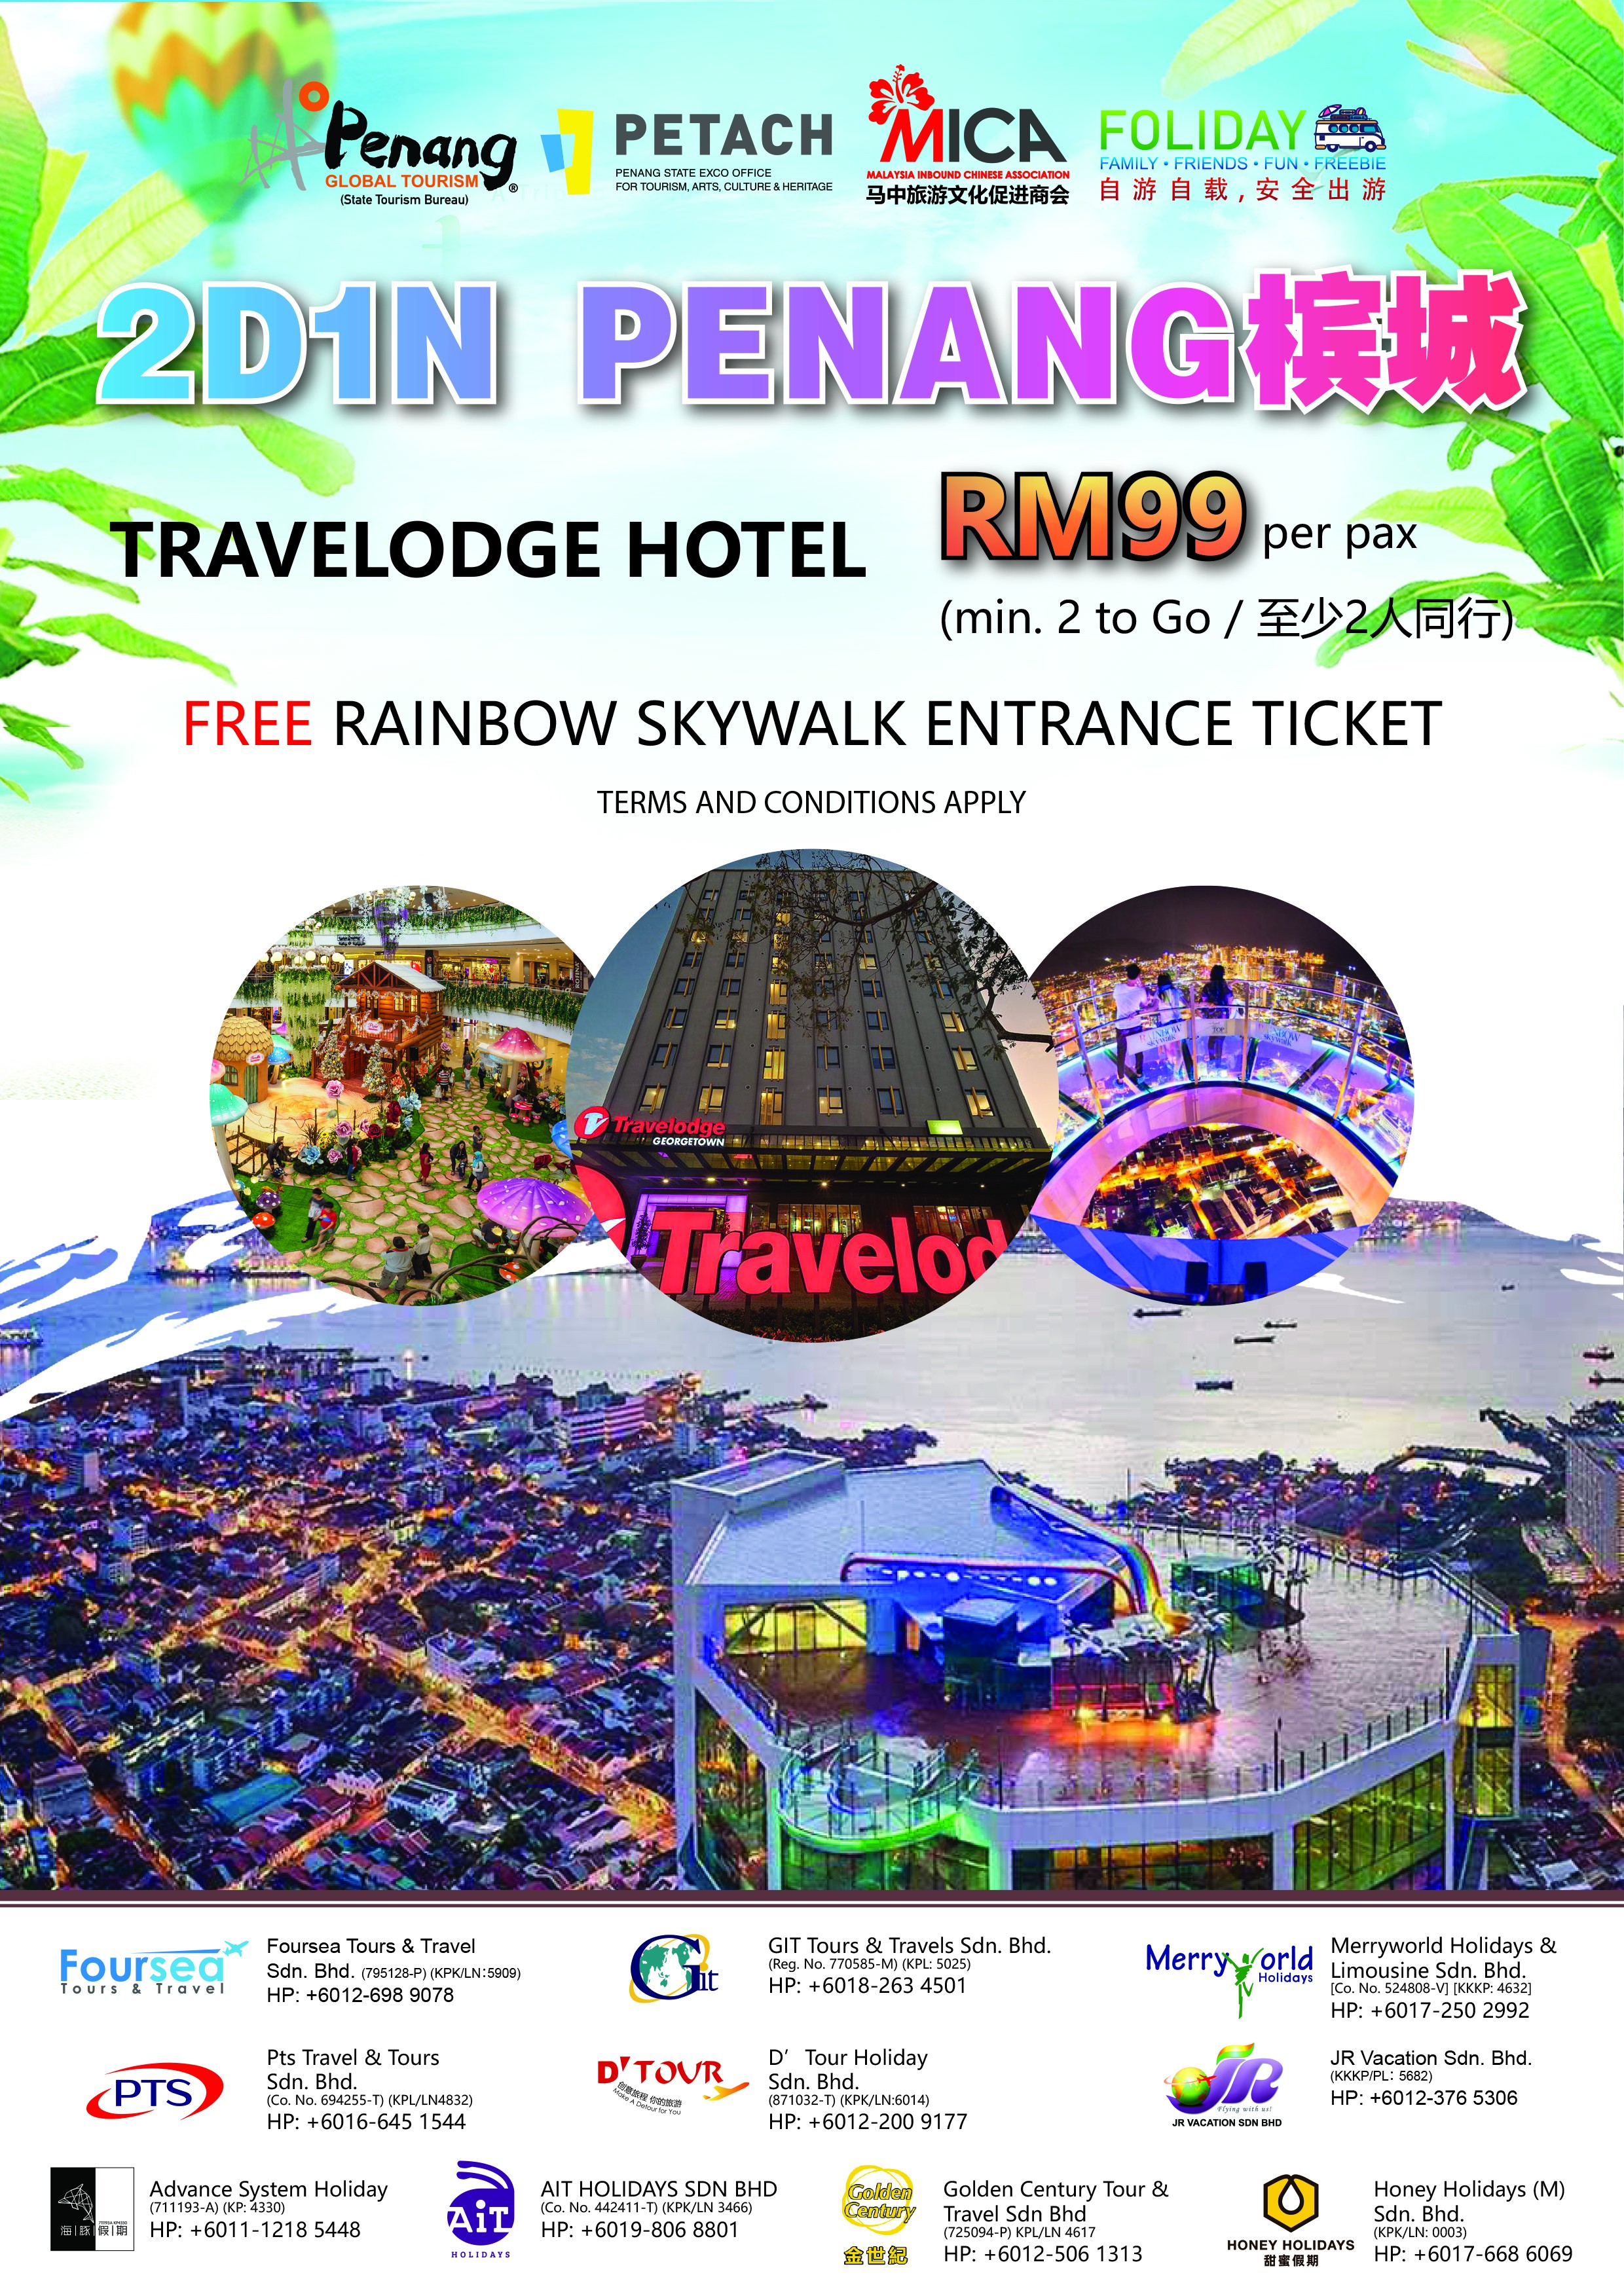 2D1N Penang - Travelodge Hotel